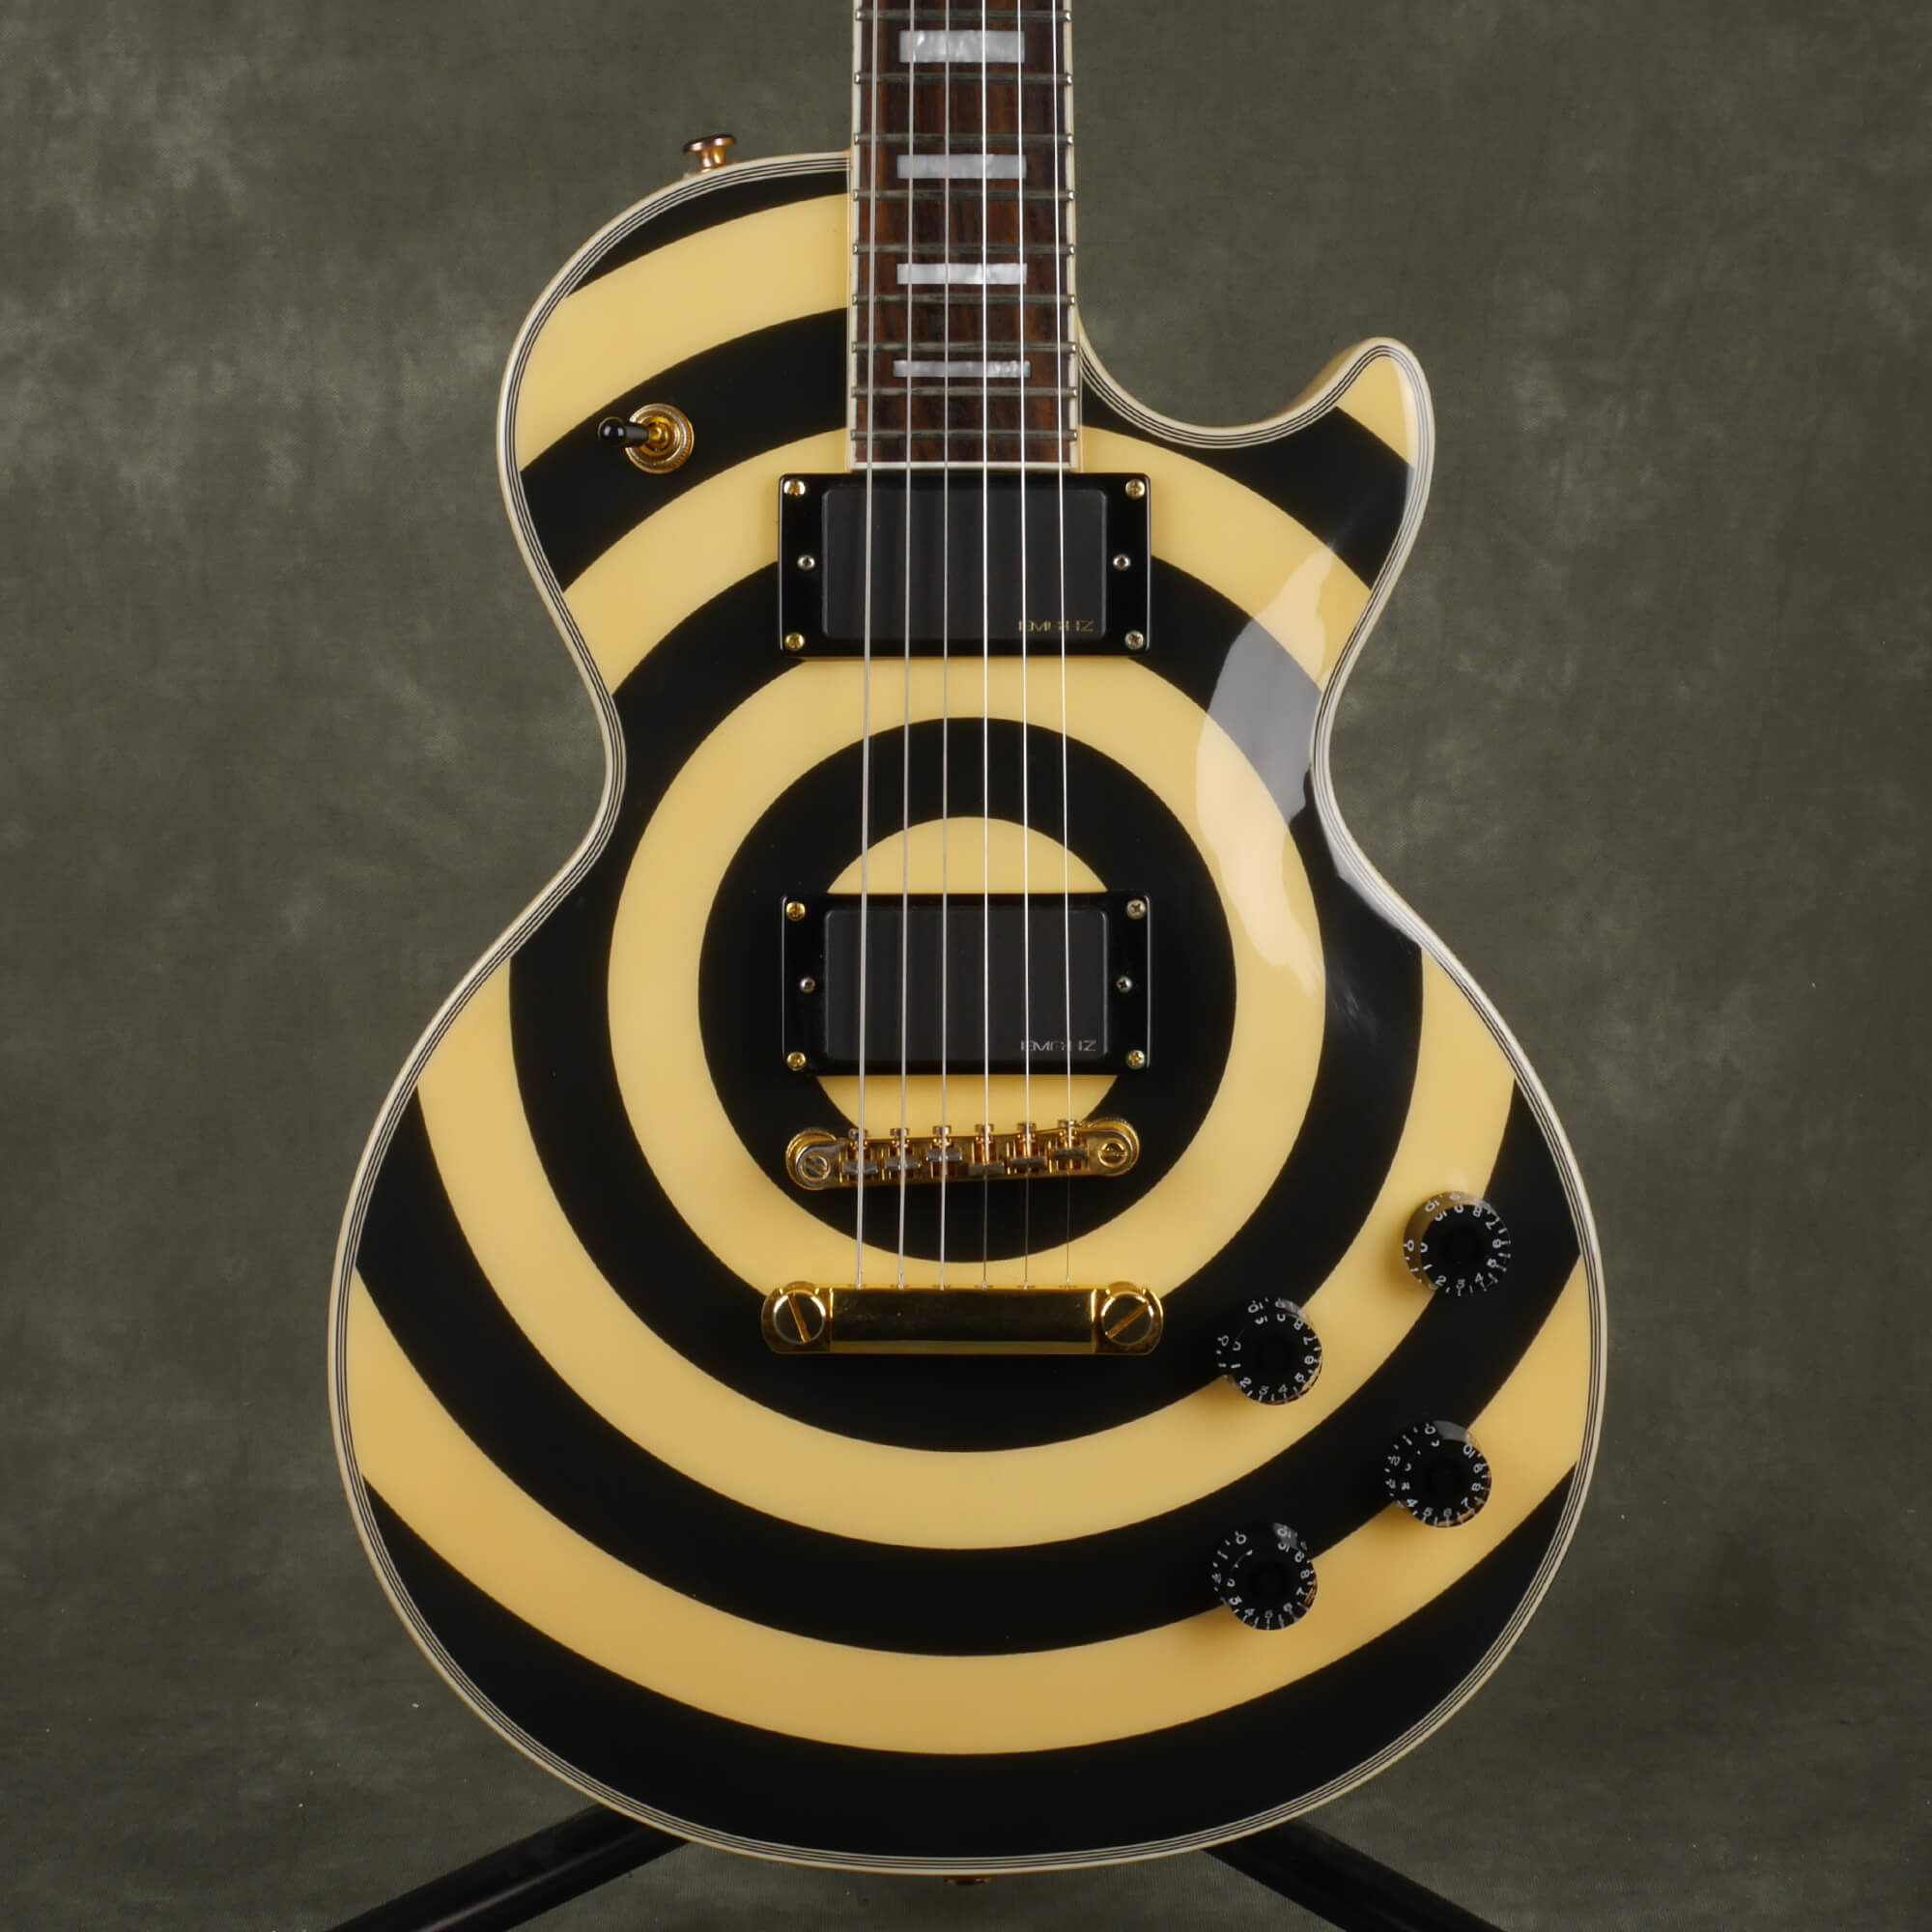 Epiphone Les Paul Zakk Wylde Bullseye Electric Guitar